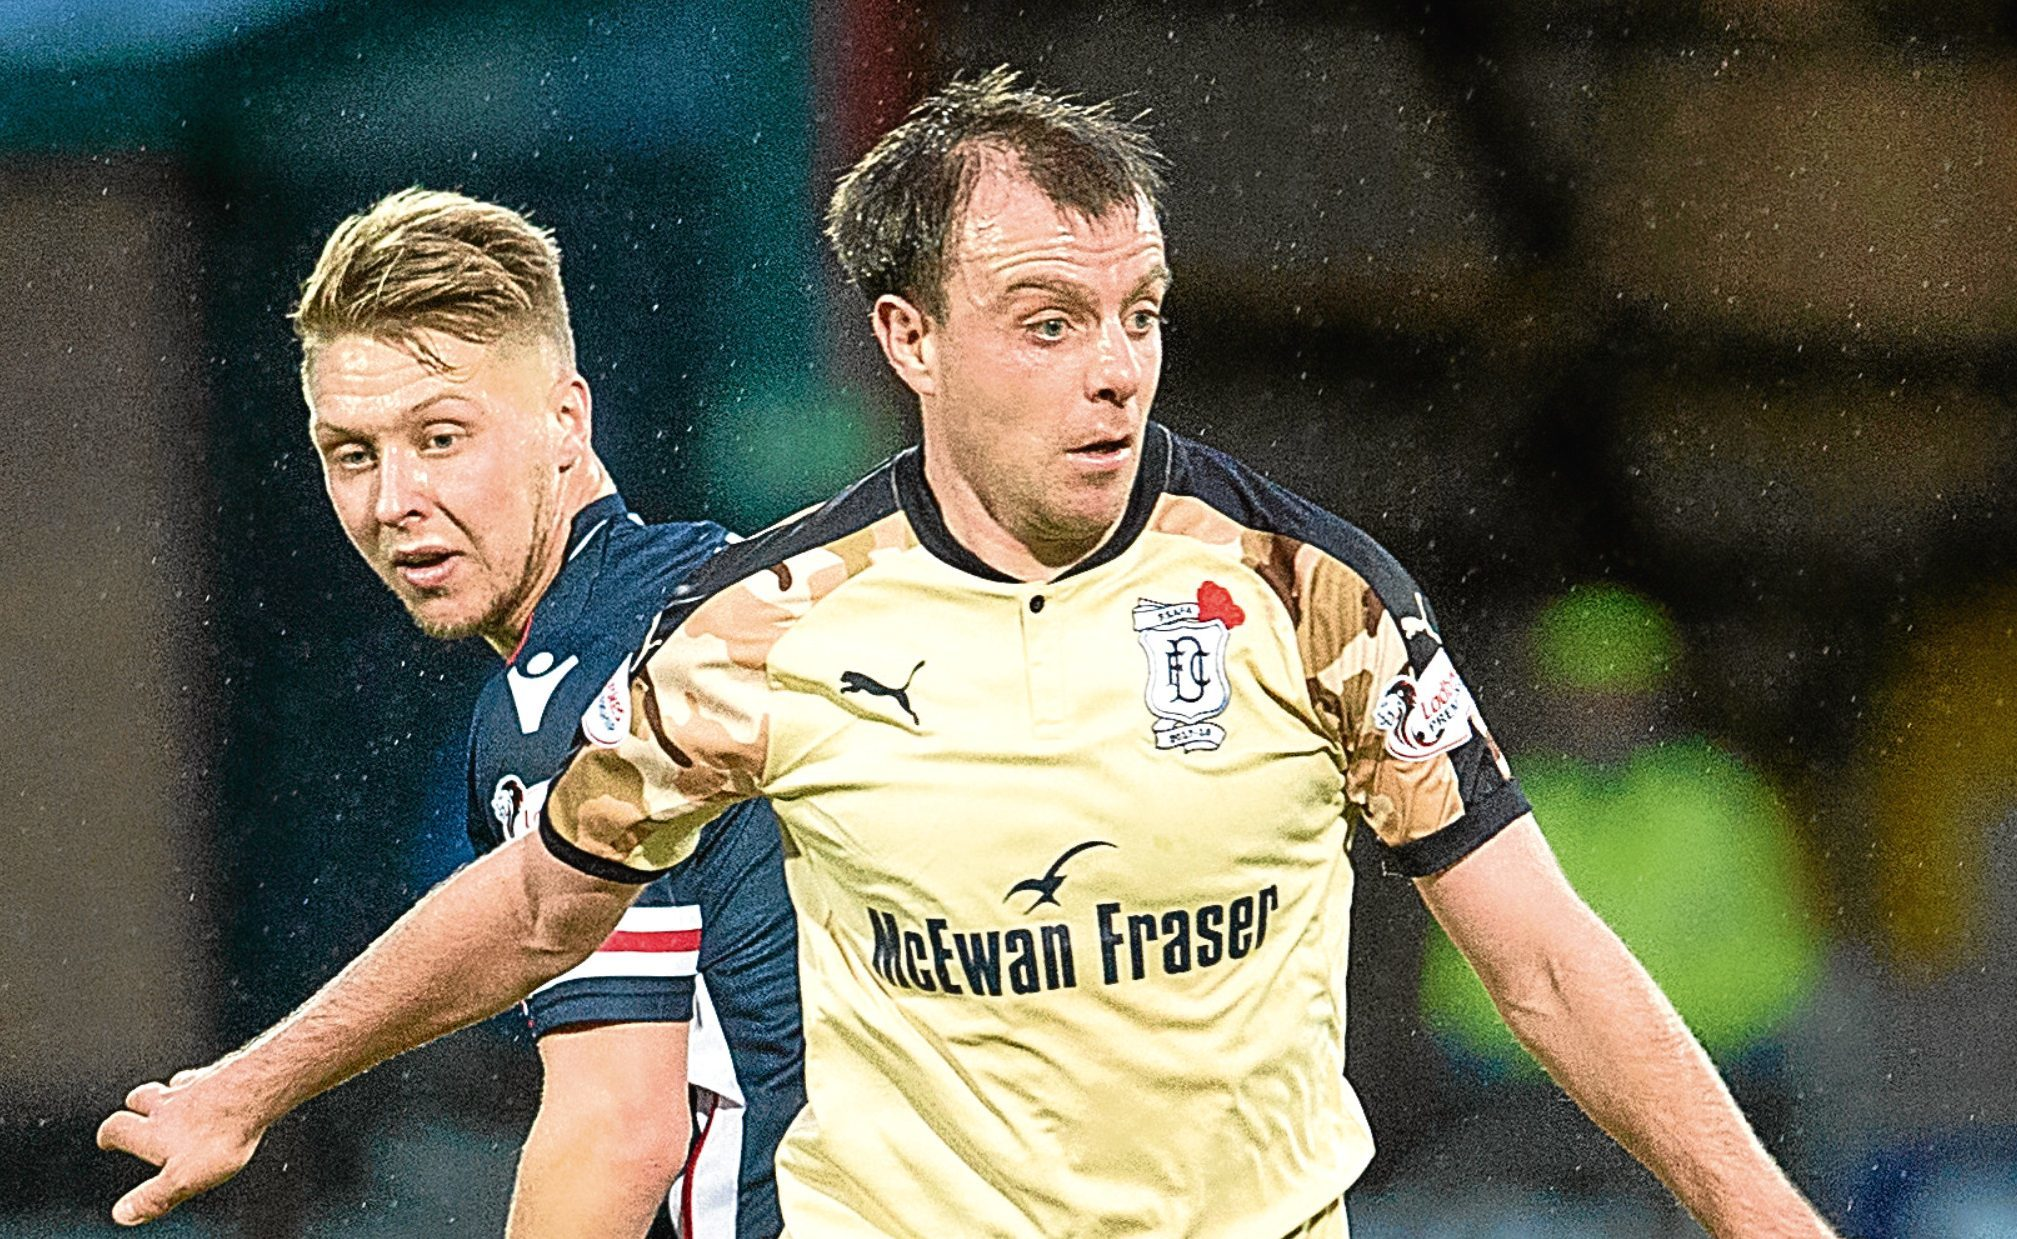 Paul McGowan says his team are showing a real togetherness after a poor spell.